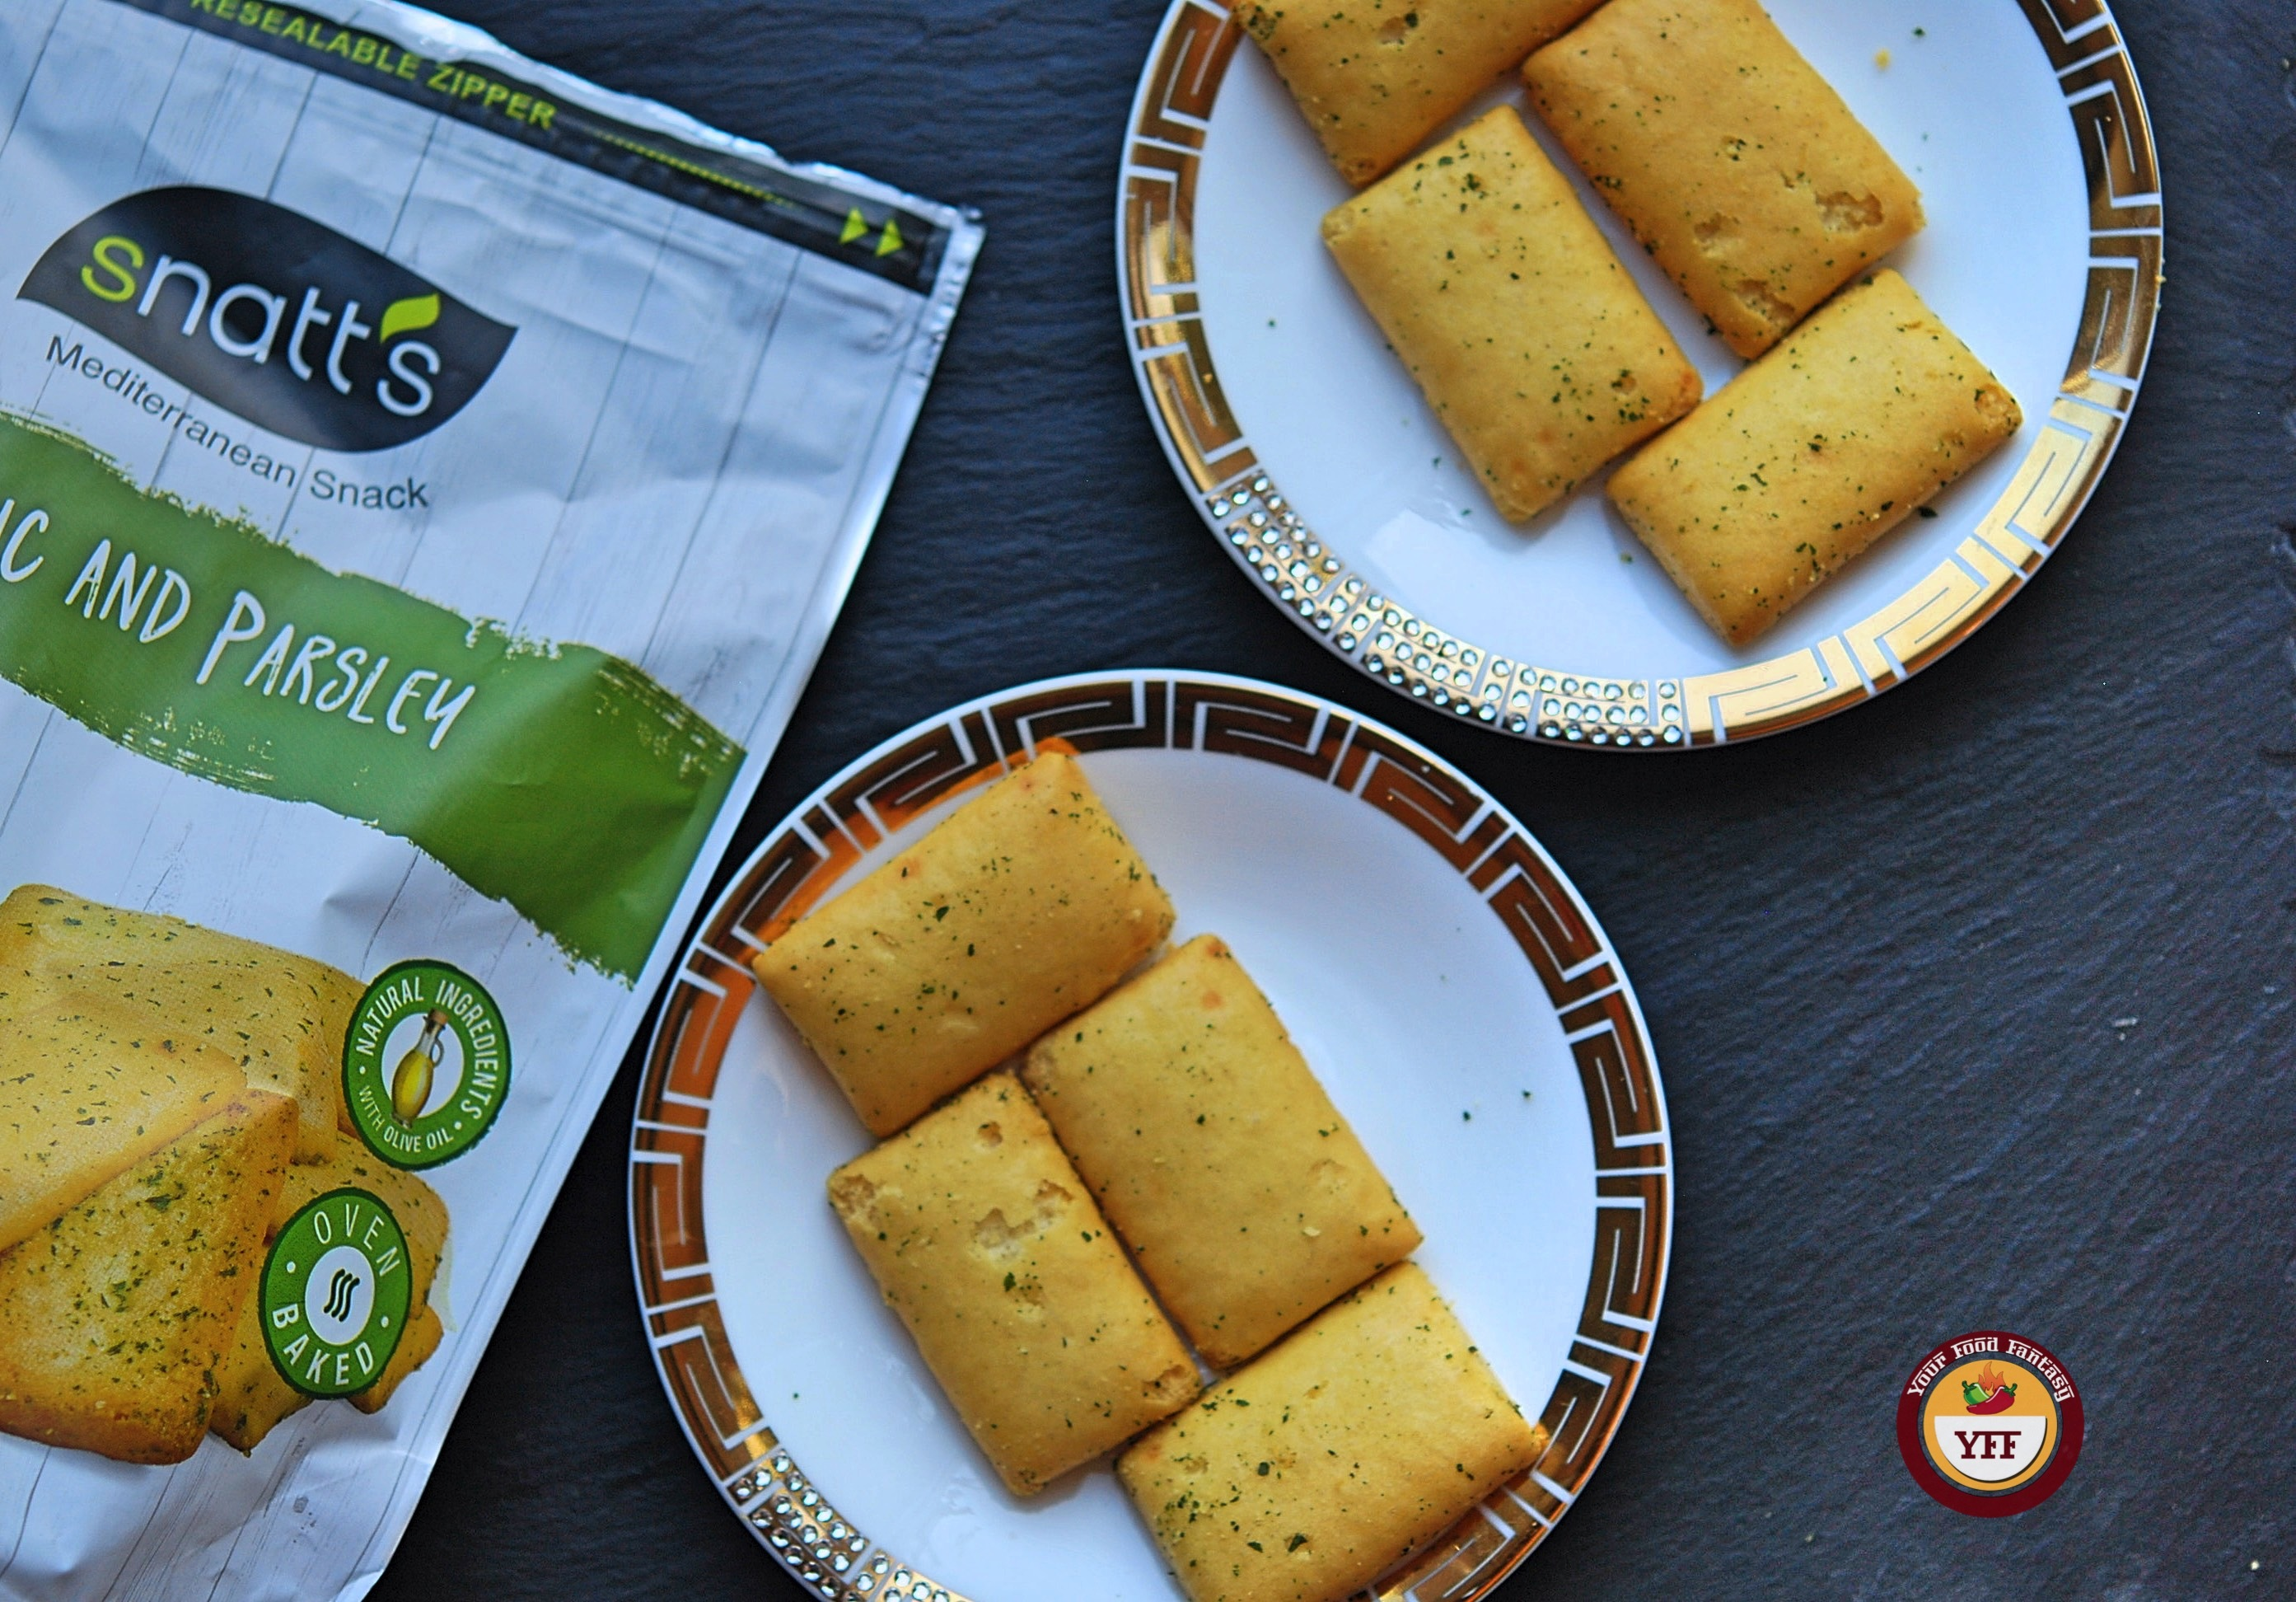 Snatts Garlic & Parsley Snacks   Review by Your Food Fantasy